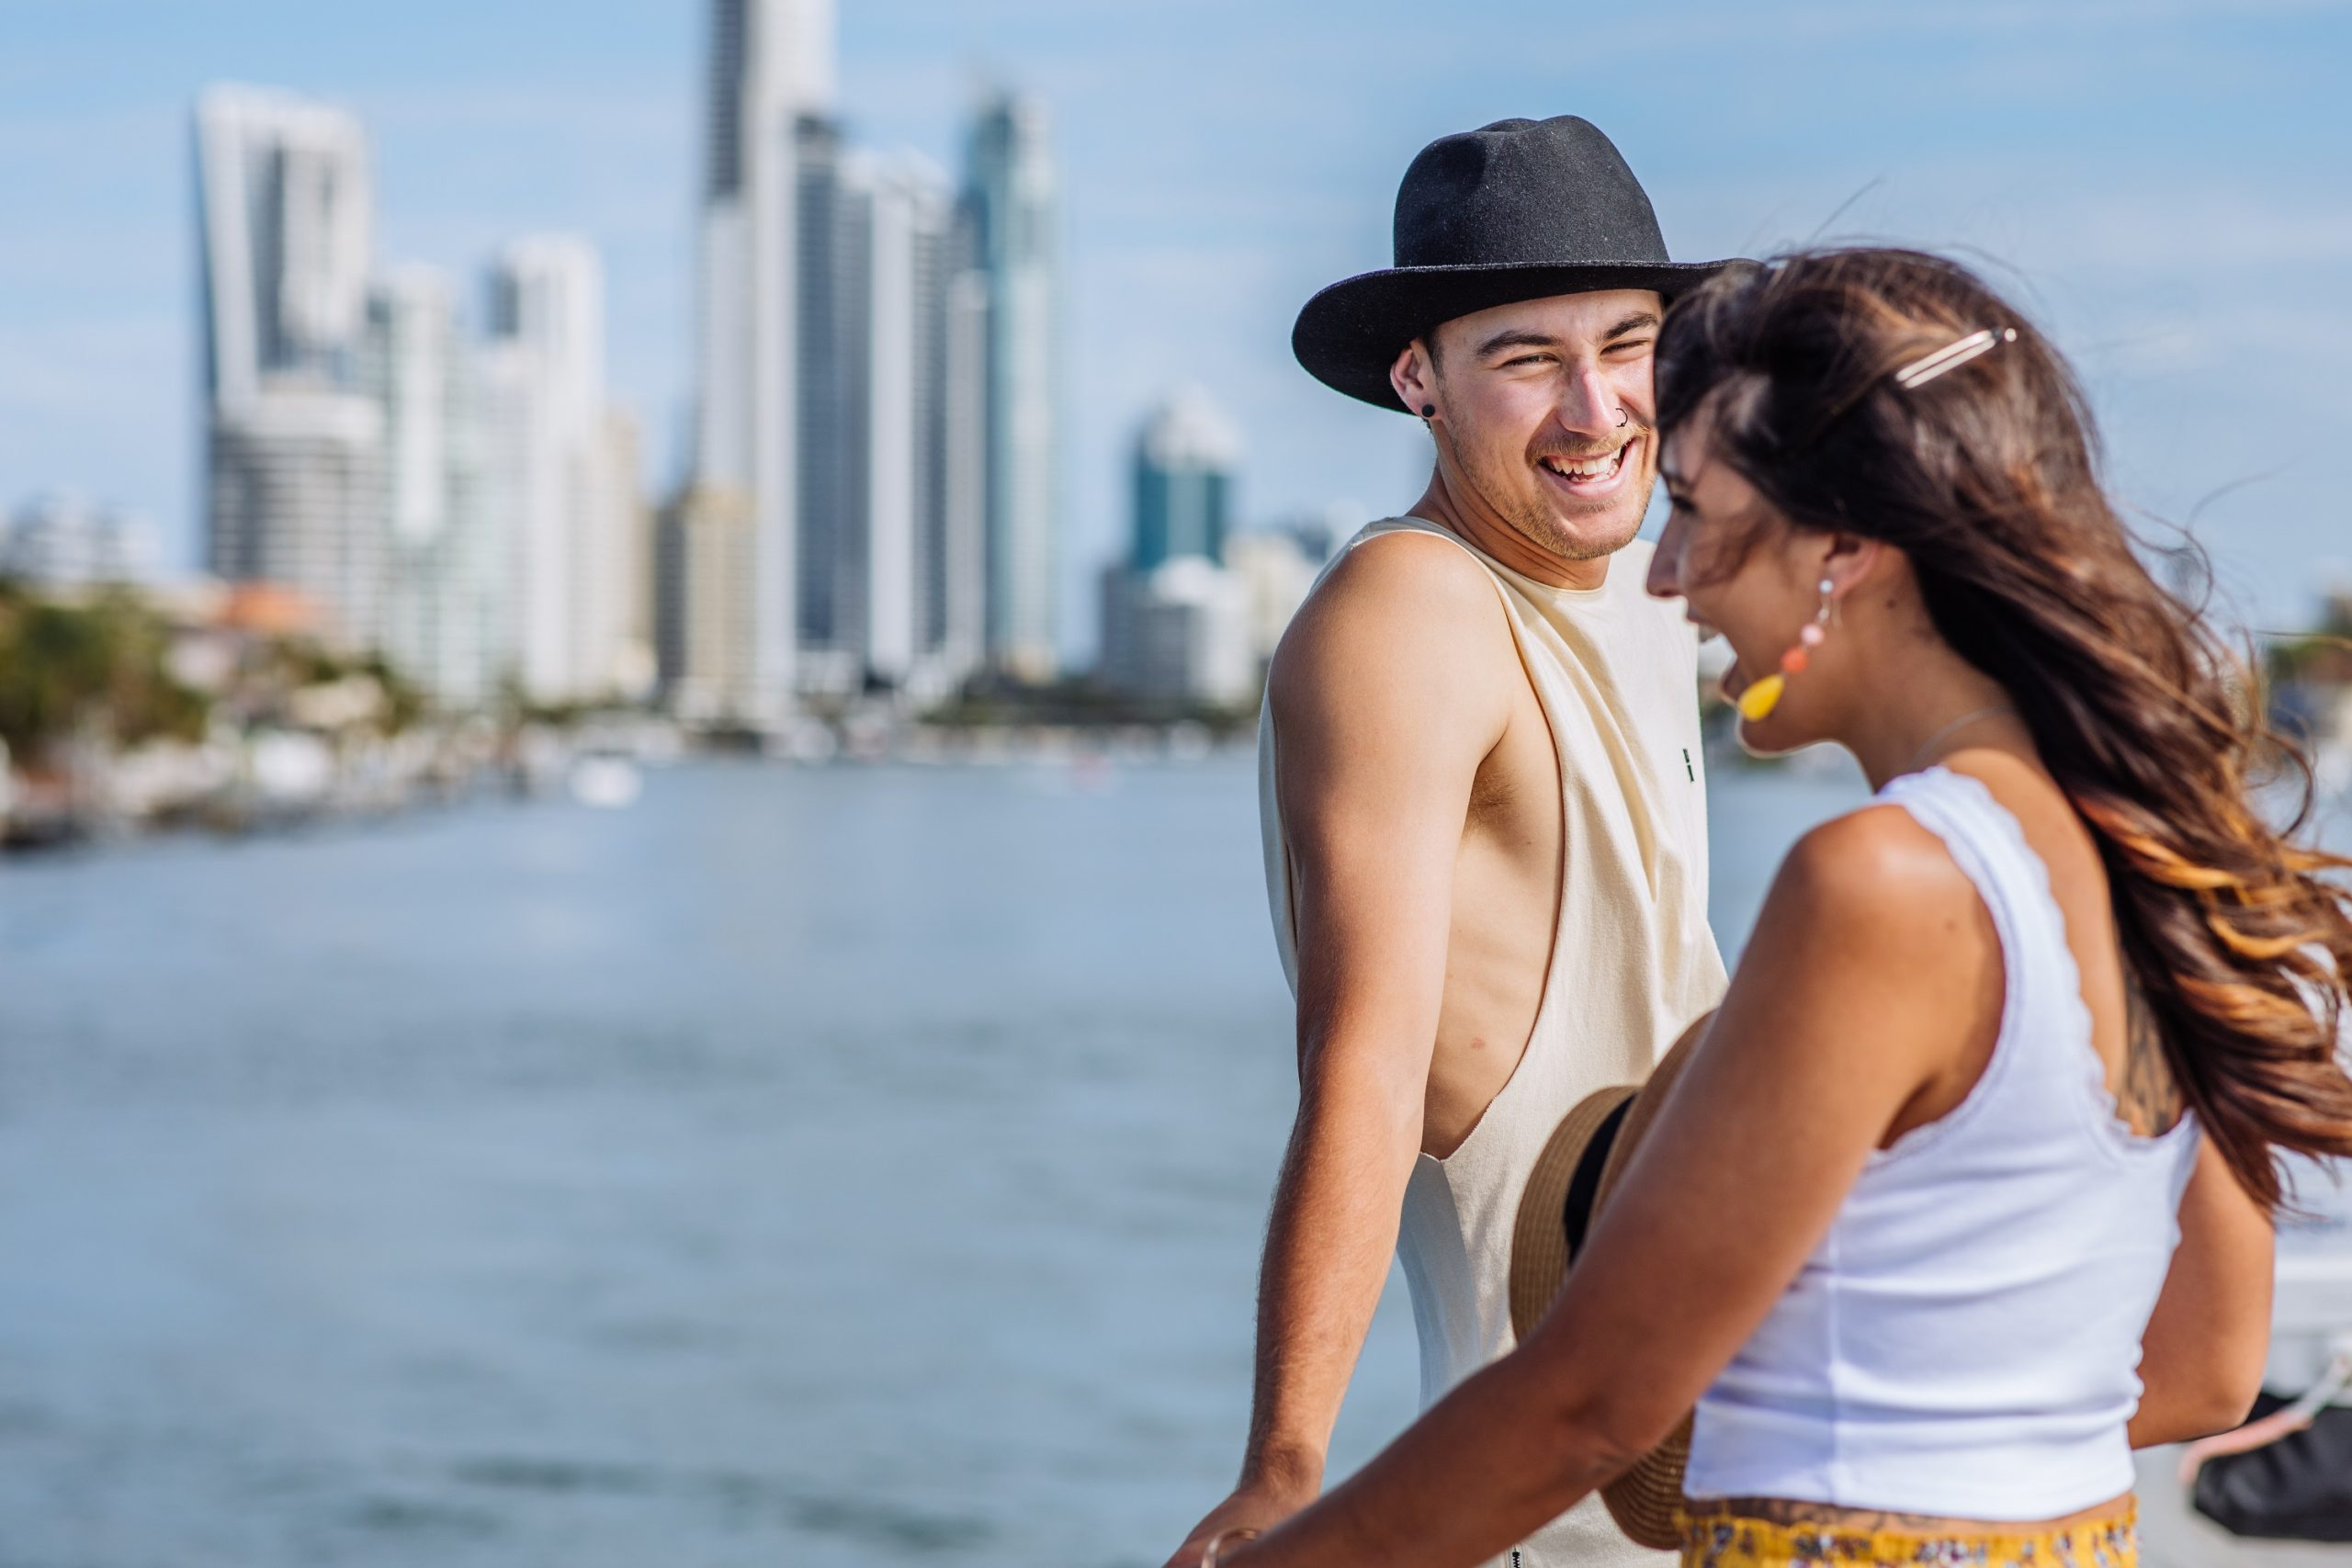 Enjoy the waterways with your partner stopping at the various stops along the way